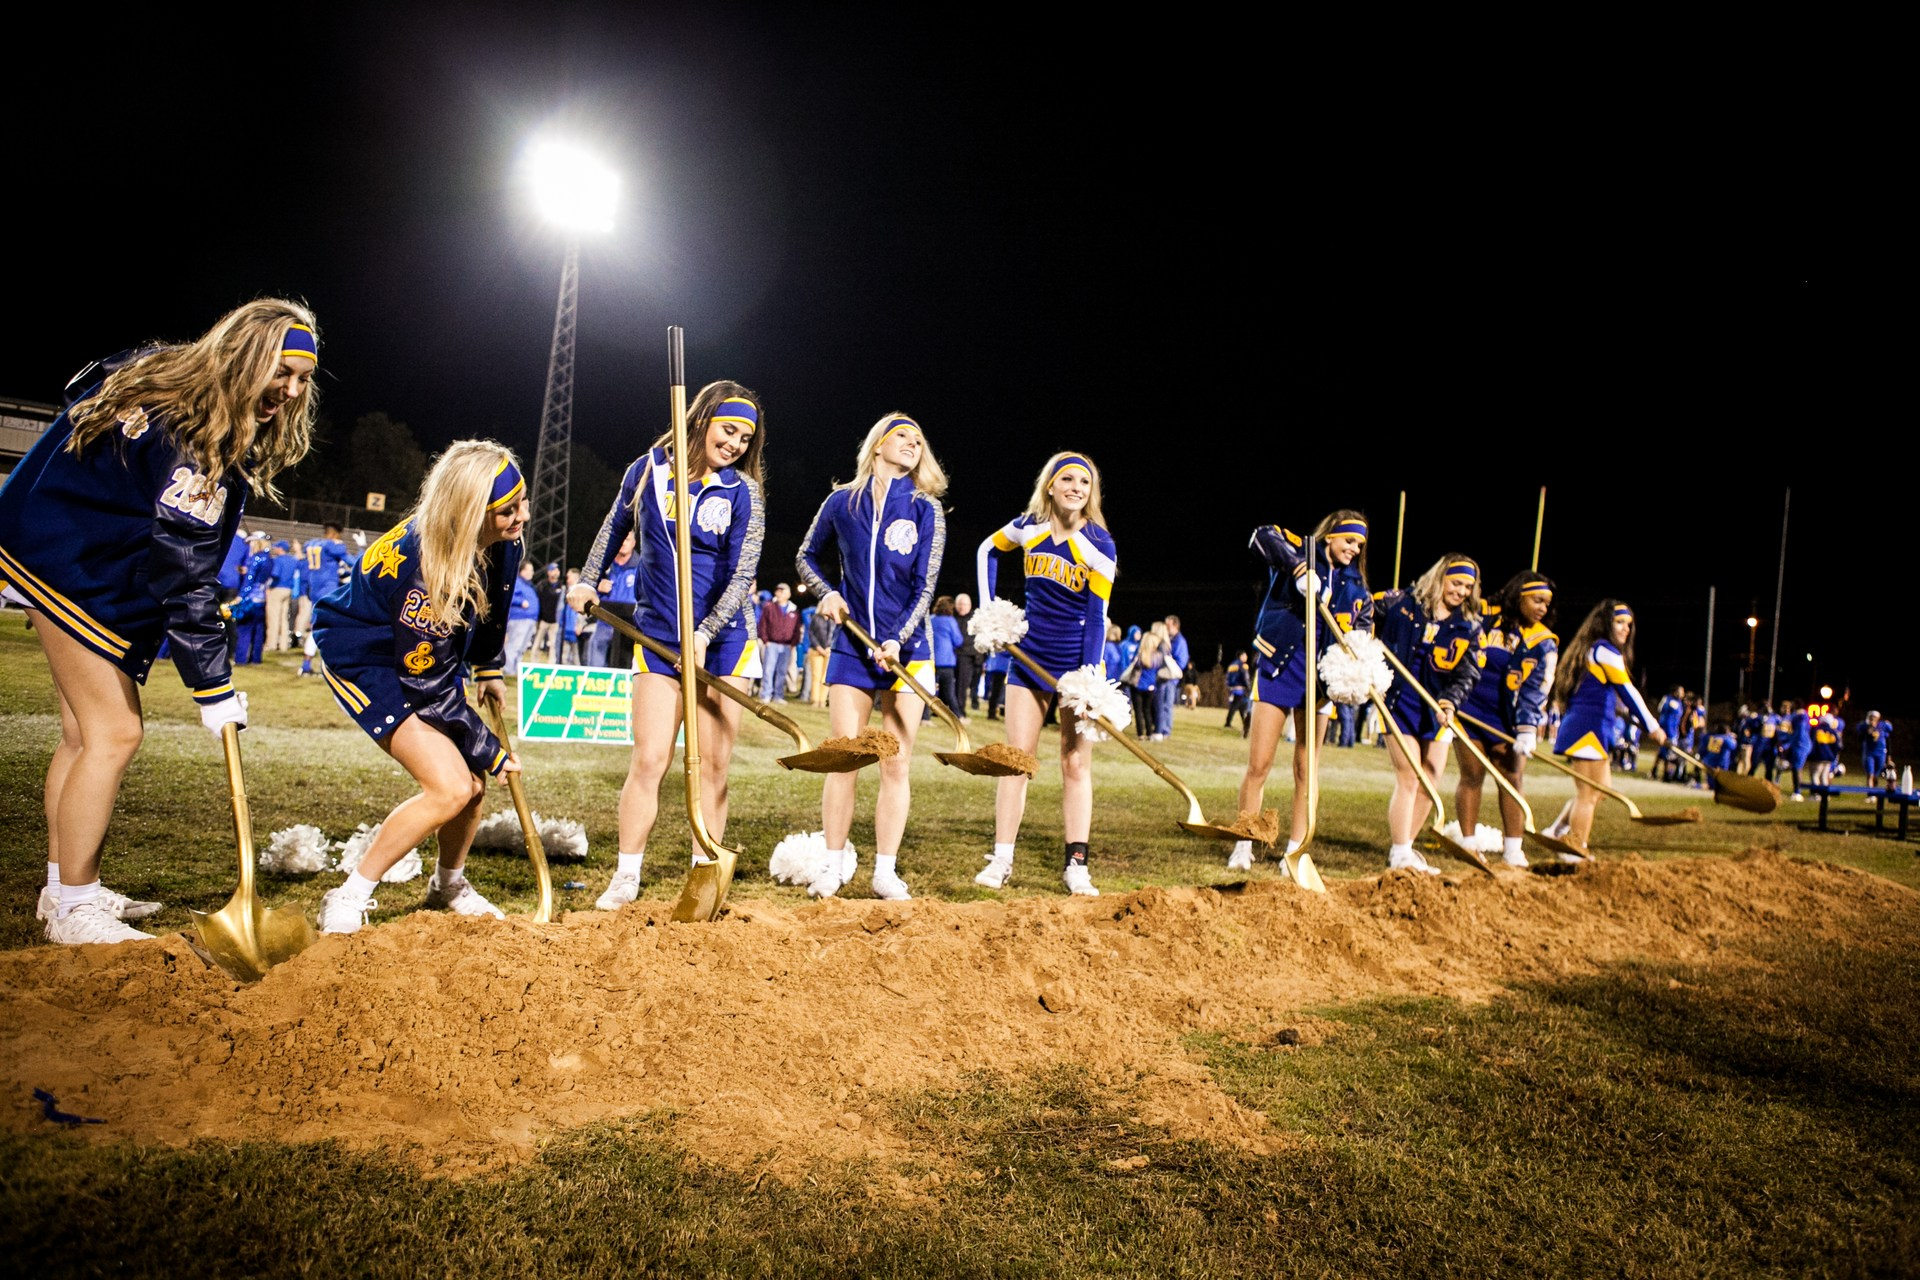 Cheerleaders on the field breaking ground